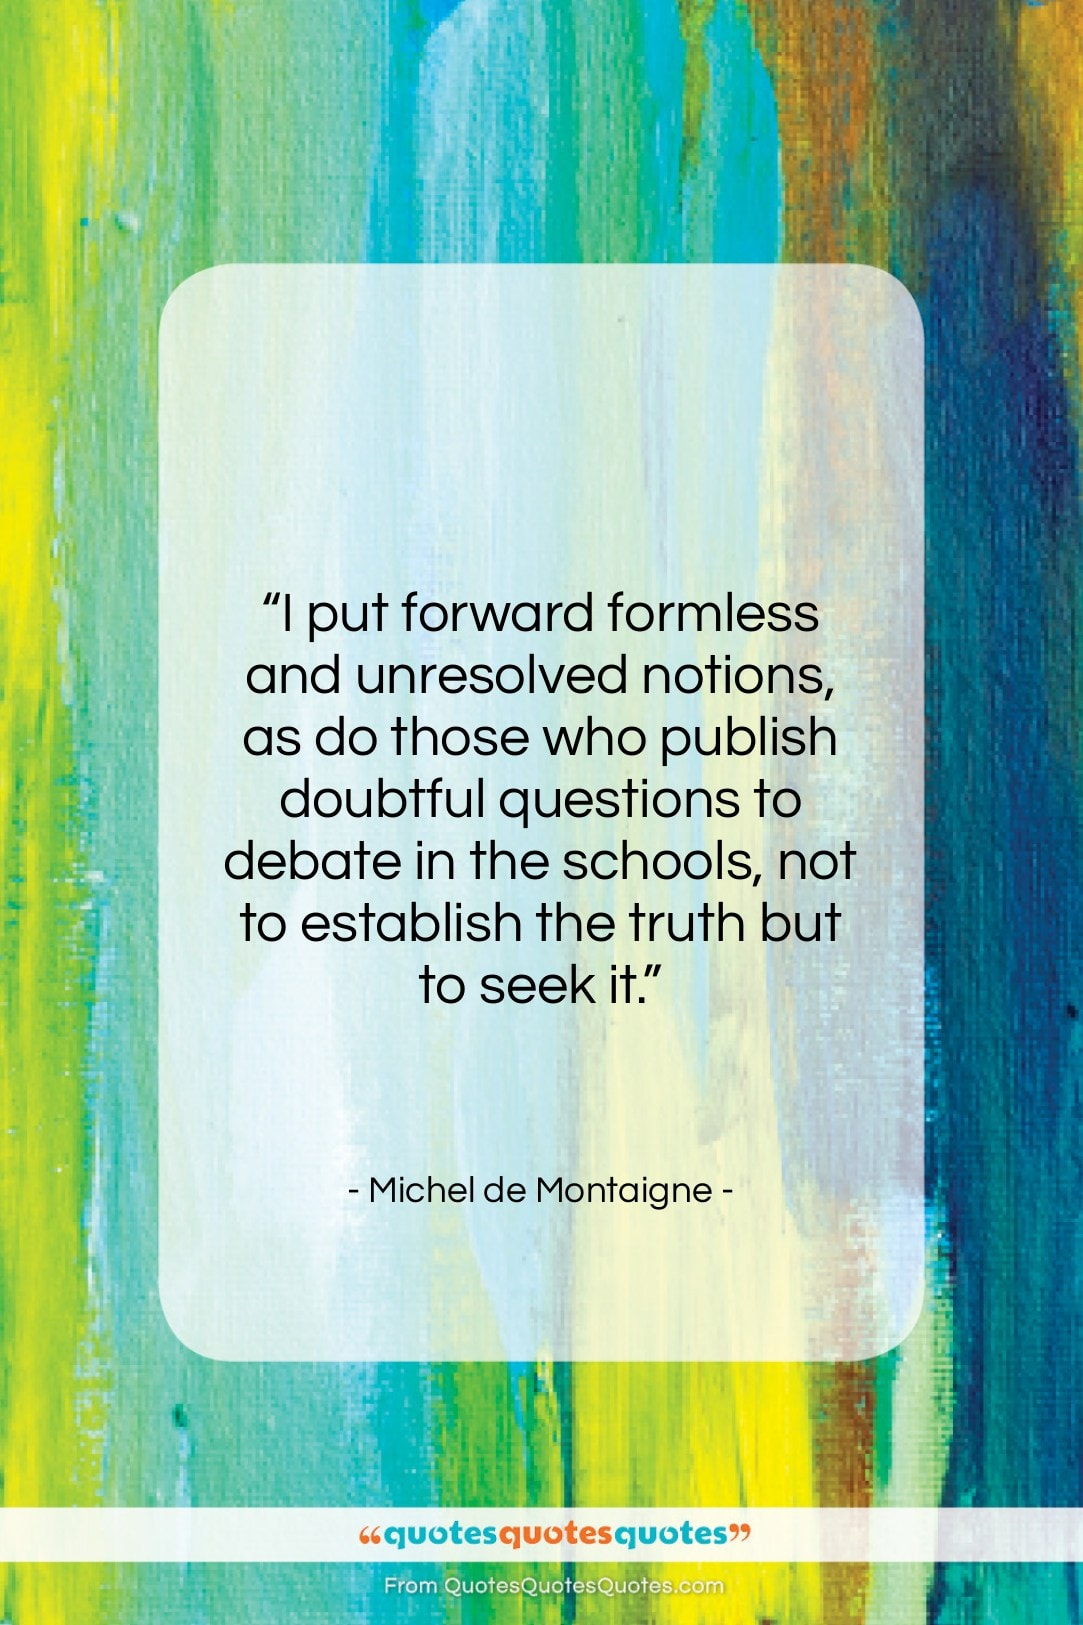 """Michel de Montaigne quote: """"I put forward formless and unresolved notions,…""""- at QuotesQuotesQuotes.com"""